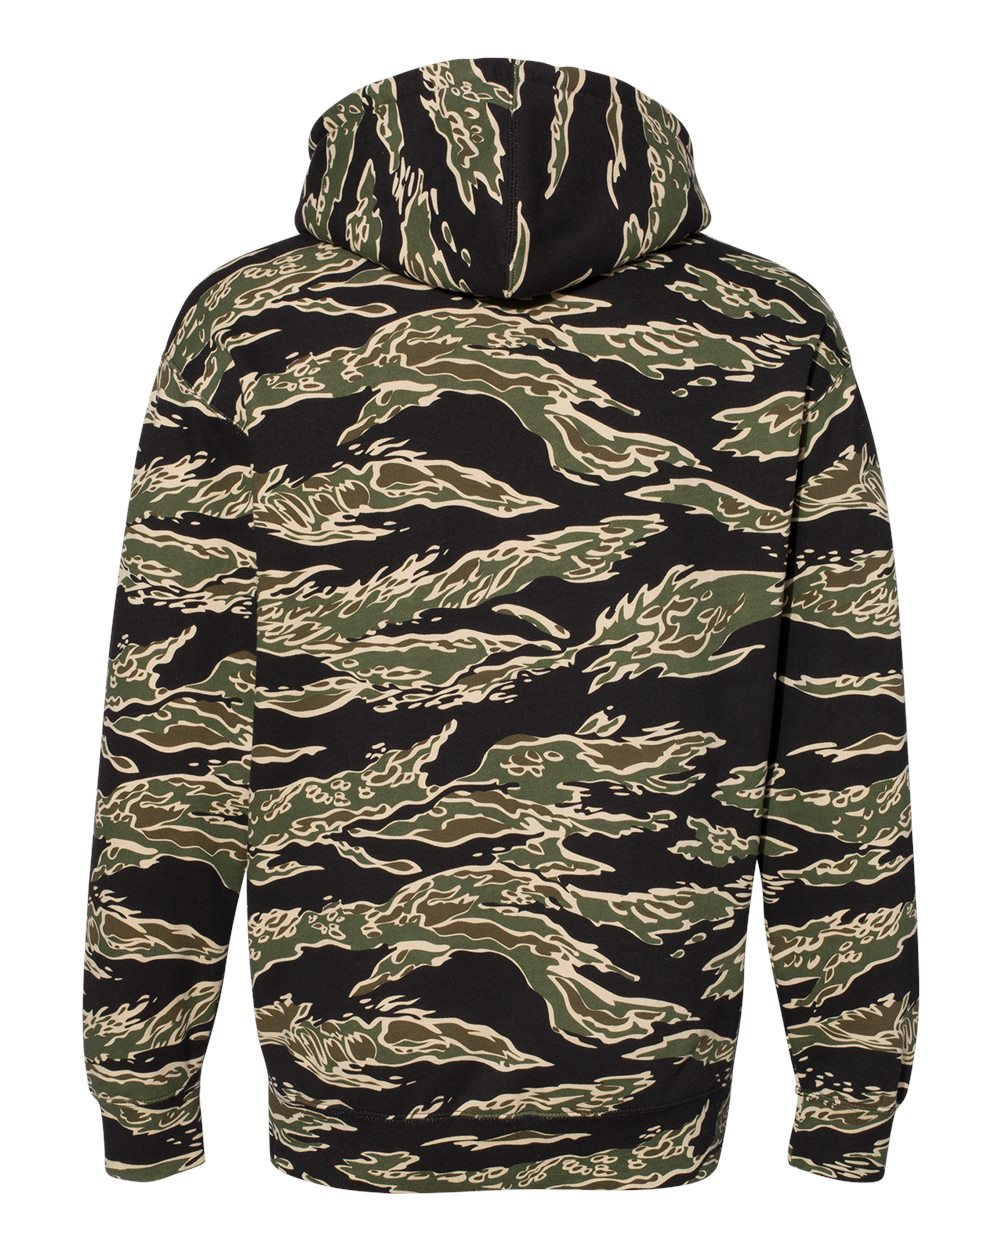 Independent-Trading-Co-Mens-Hooded-Pullover-Sweatshirt-IND4000-up-to-3XL miniature 85